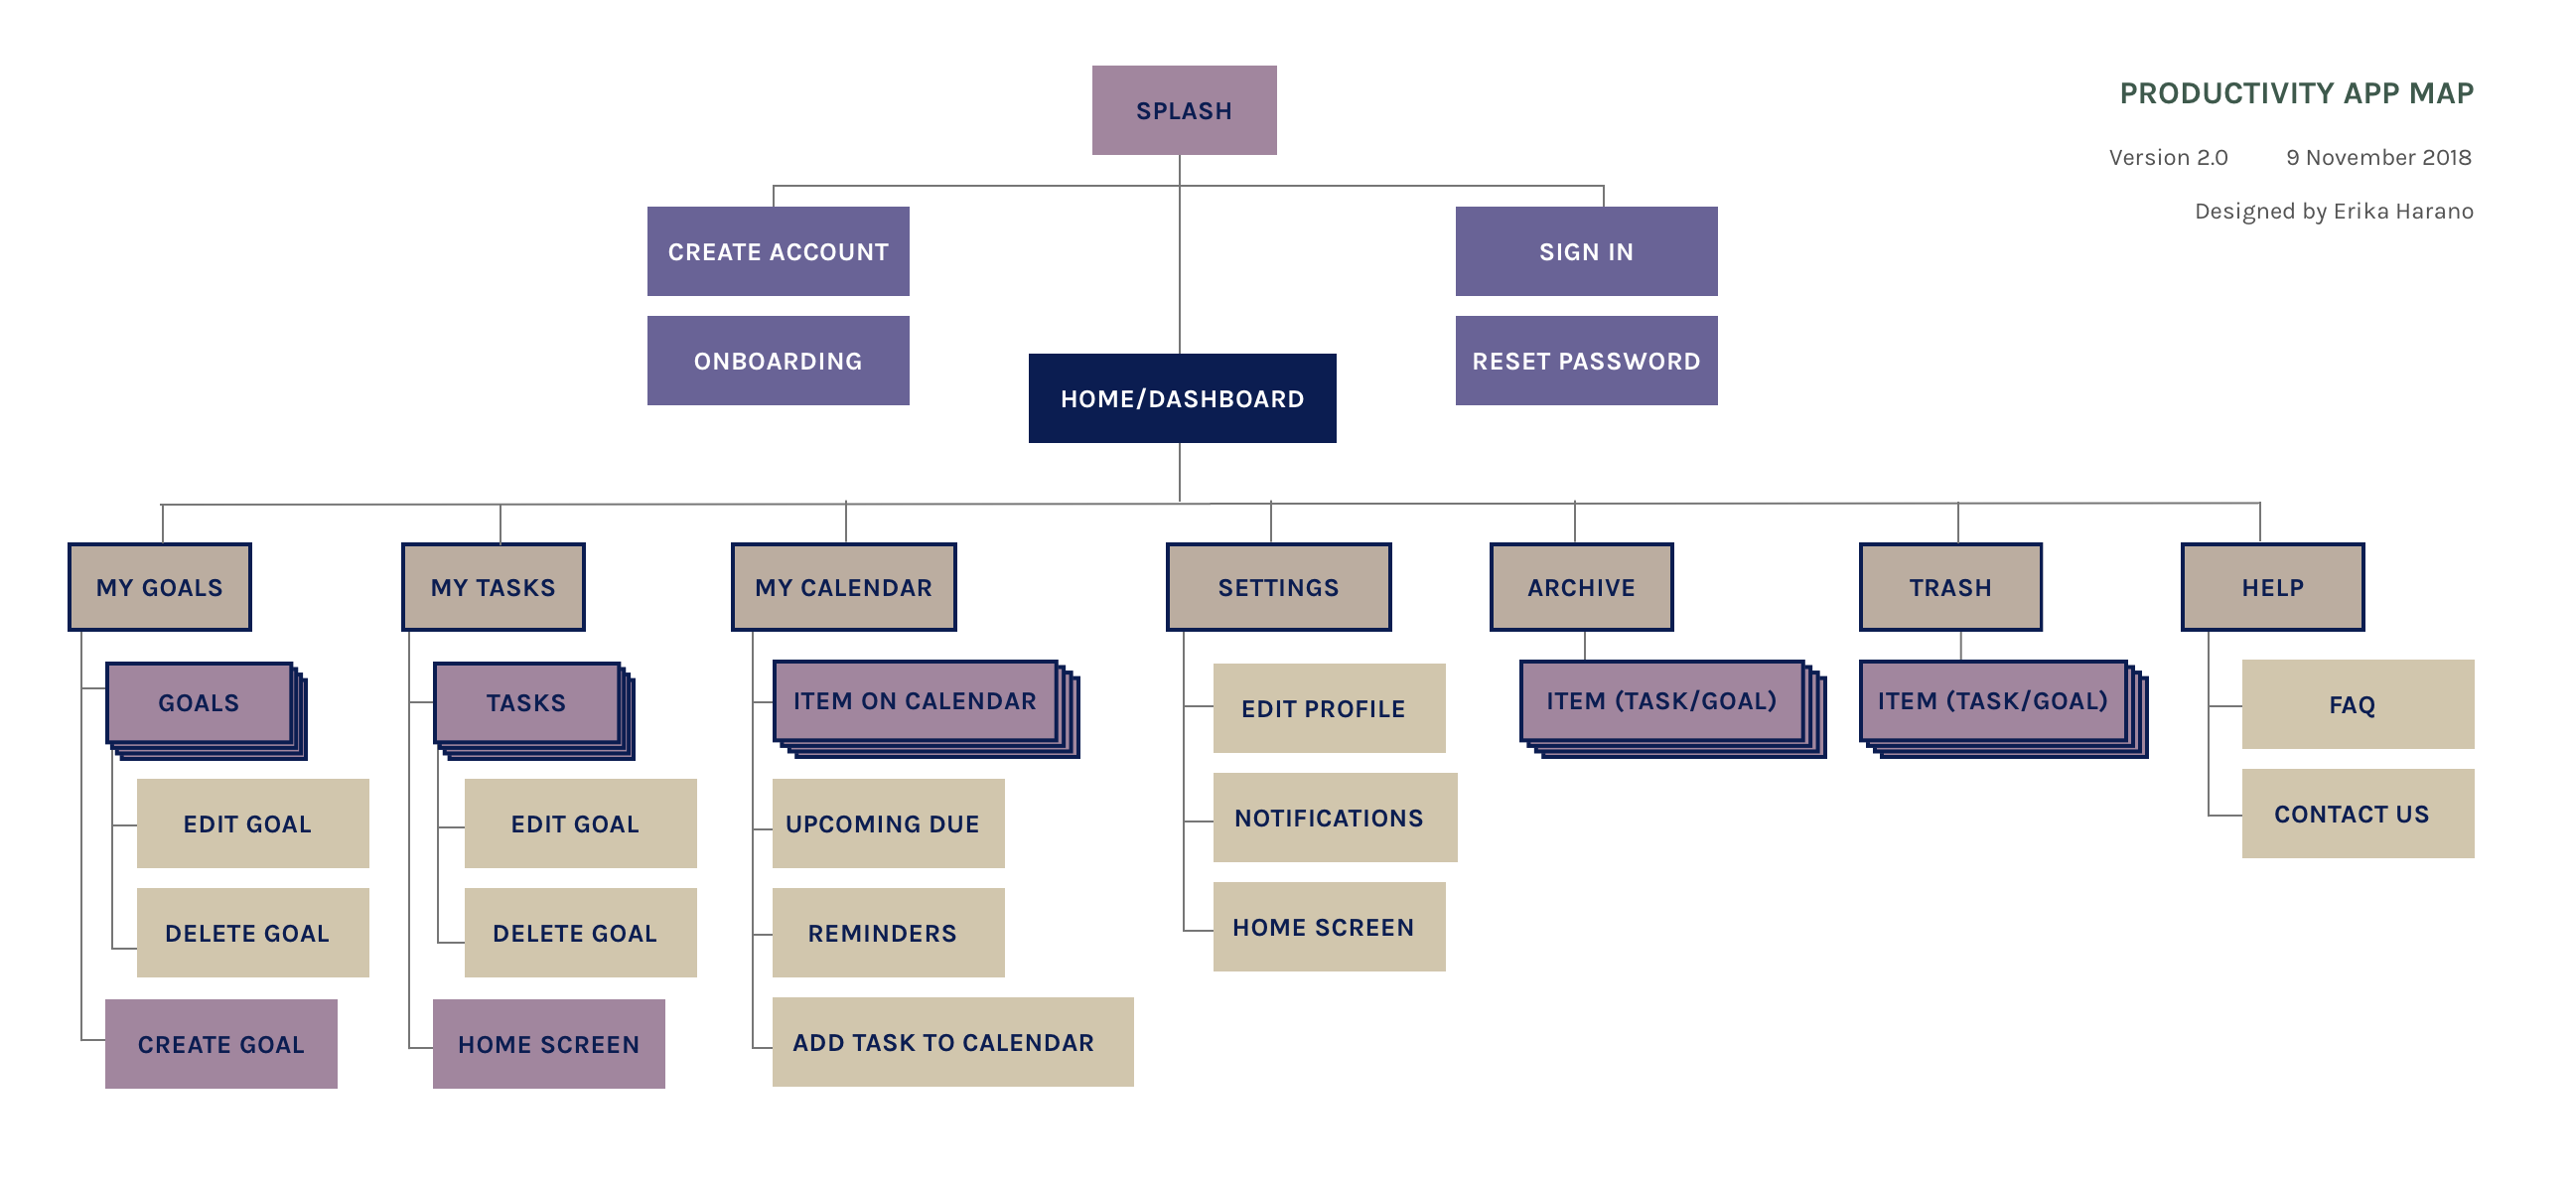 A diagram depicting the application's structure and information hierarchy (application map.)